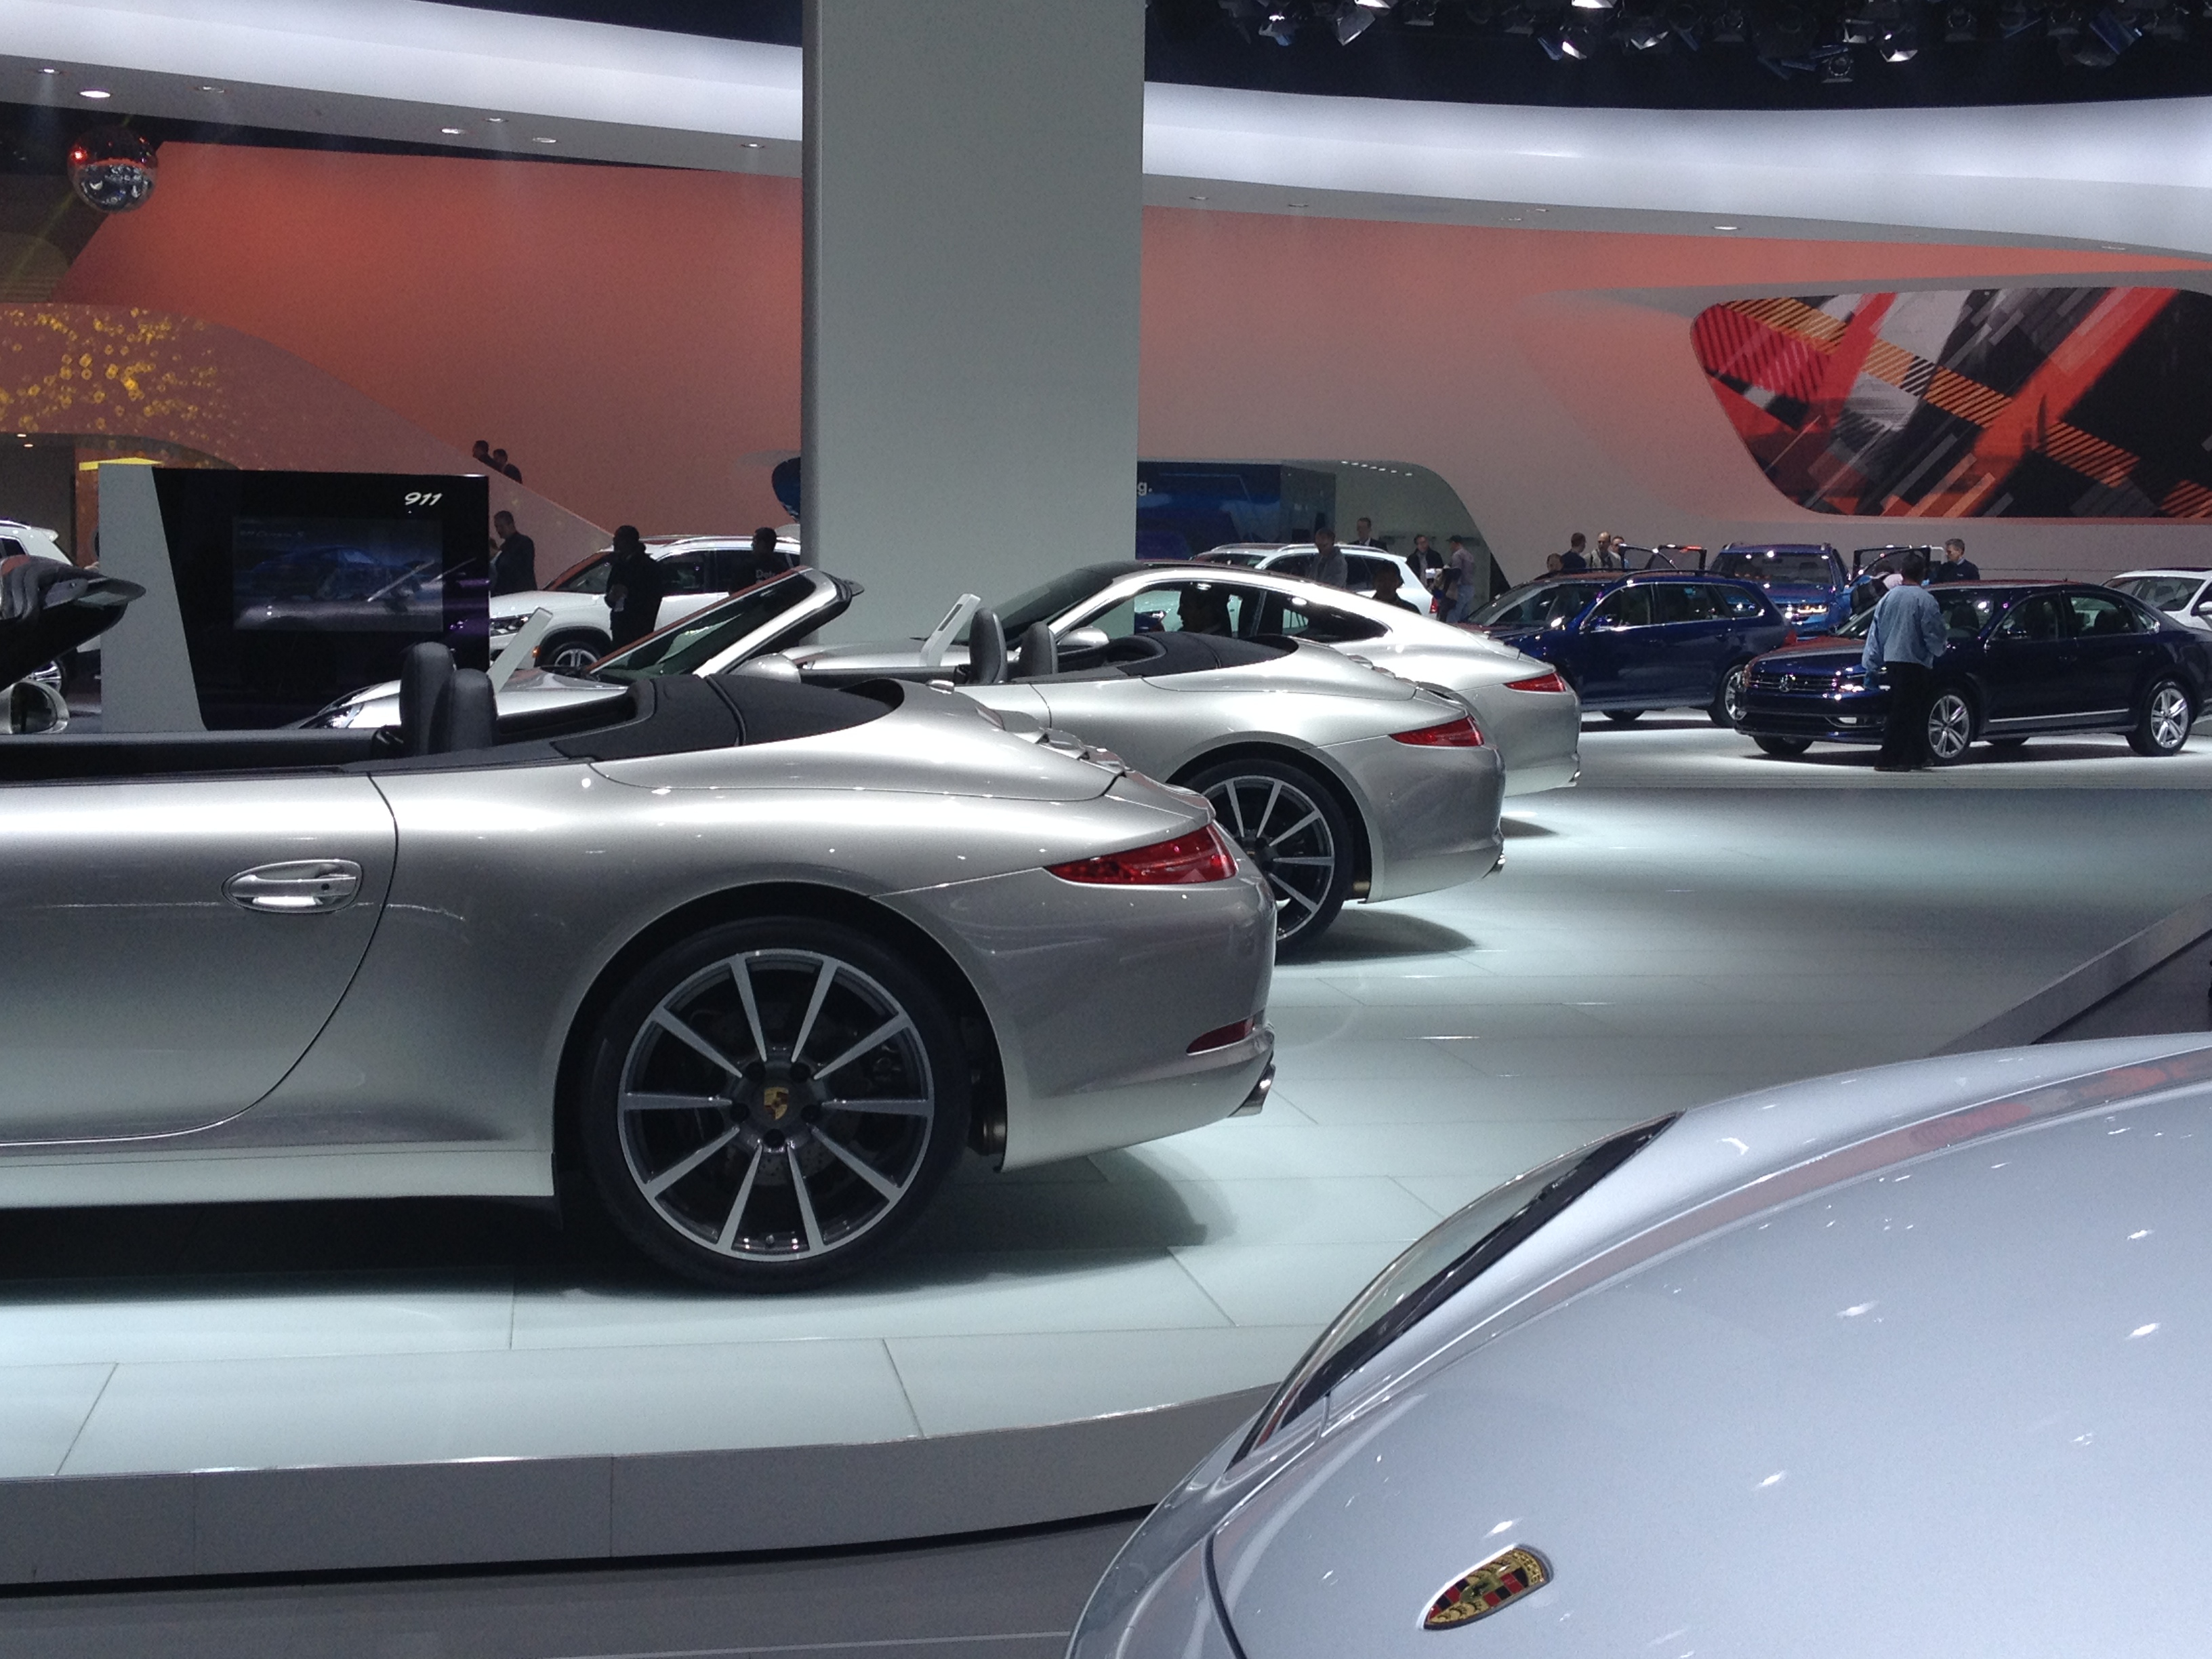 2013-porsche-911-carrera-cabriolet-carrera-4s-cabriolet-and-carrera-4-at-naias-2013-by-sarahlarson